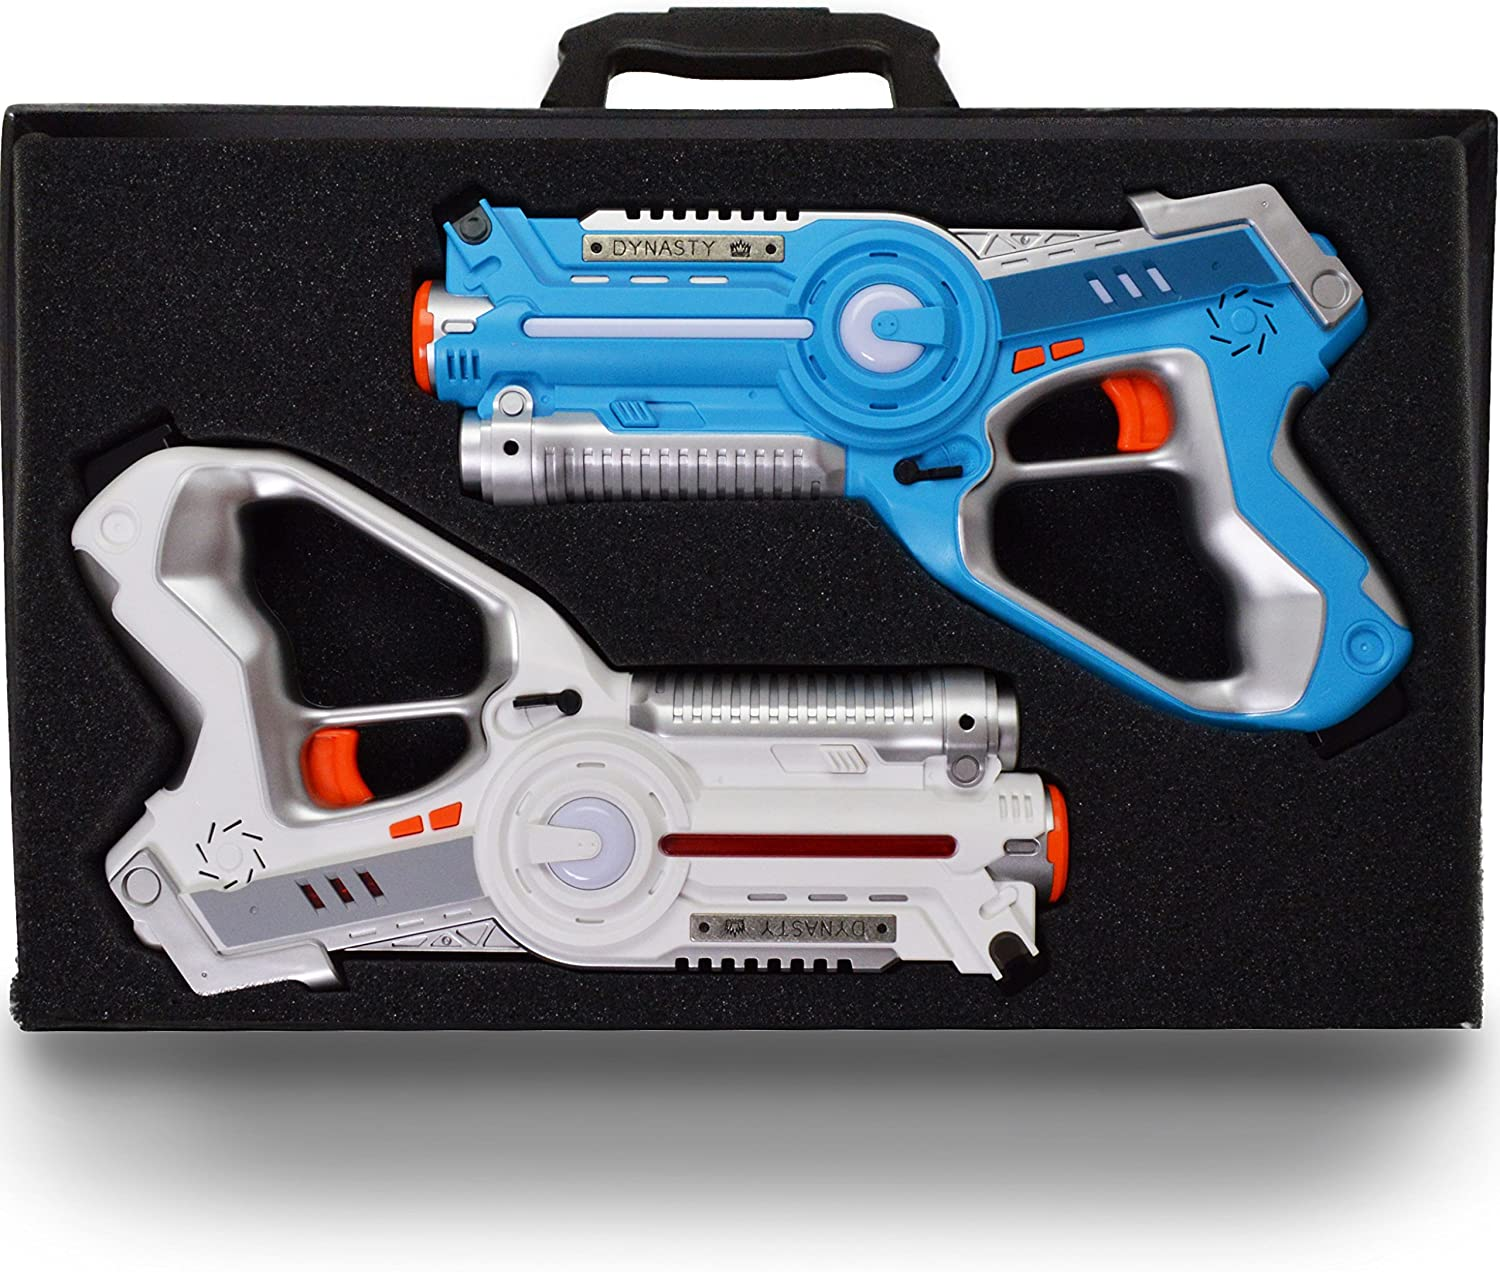 Top 9 Best Laser Tag Guns for Kids (2020 Reviews & Buying Guide) 7